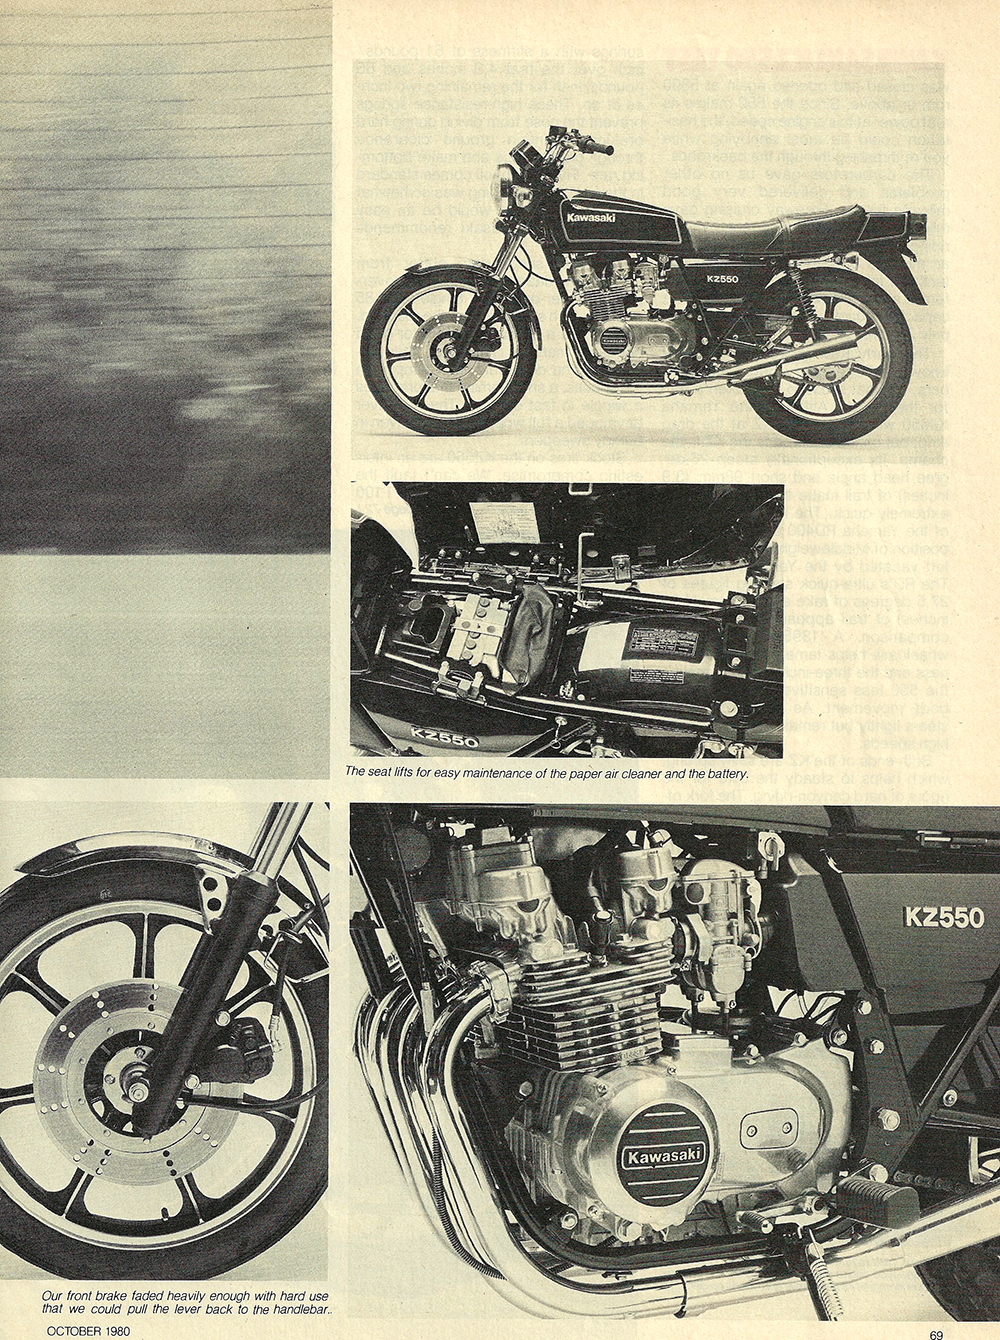 1980 Kawasaki KZ550 road test 03.jpg